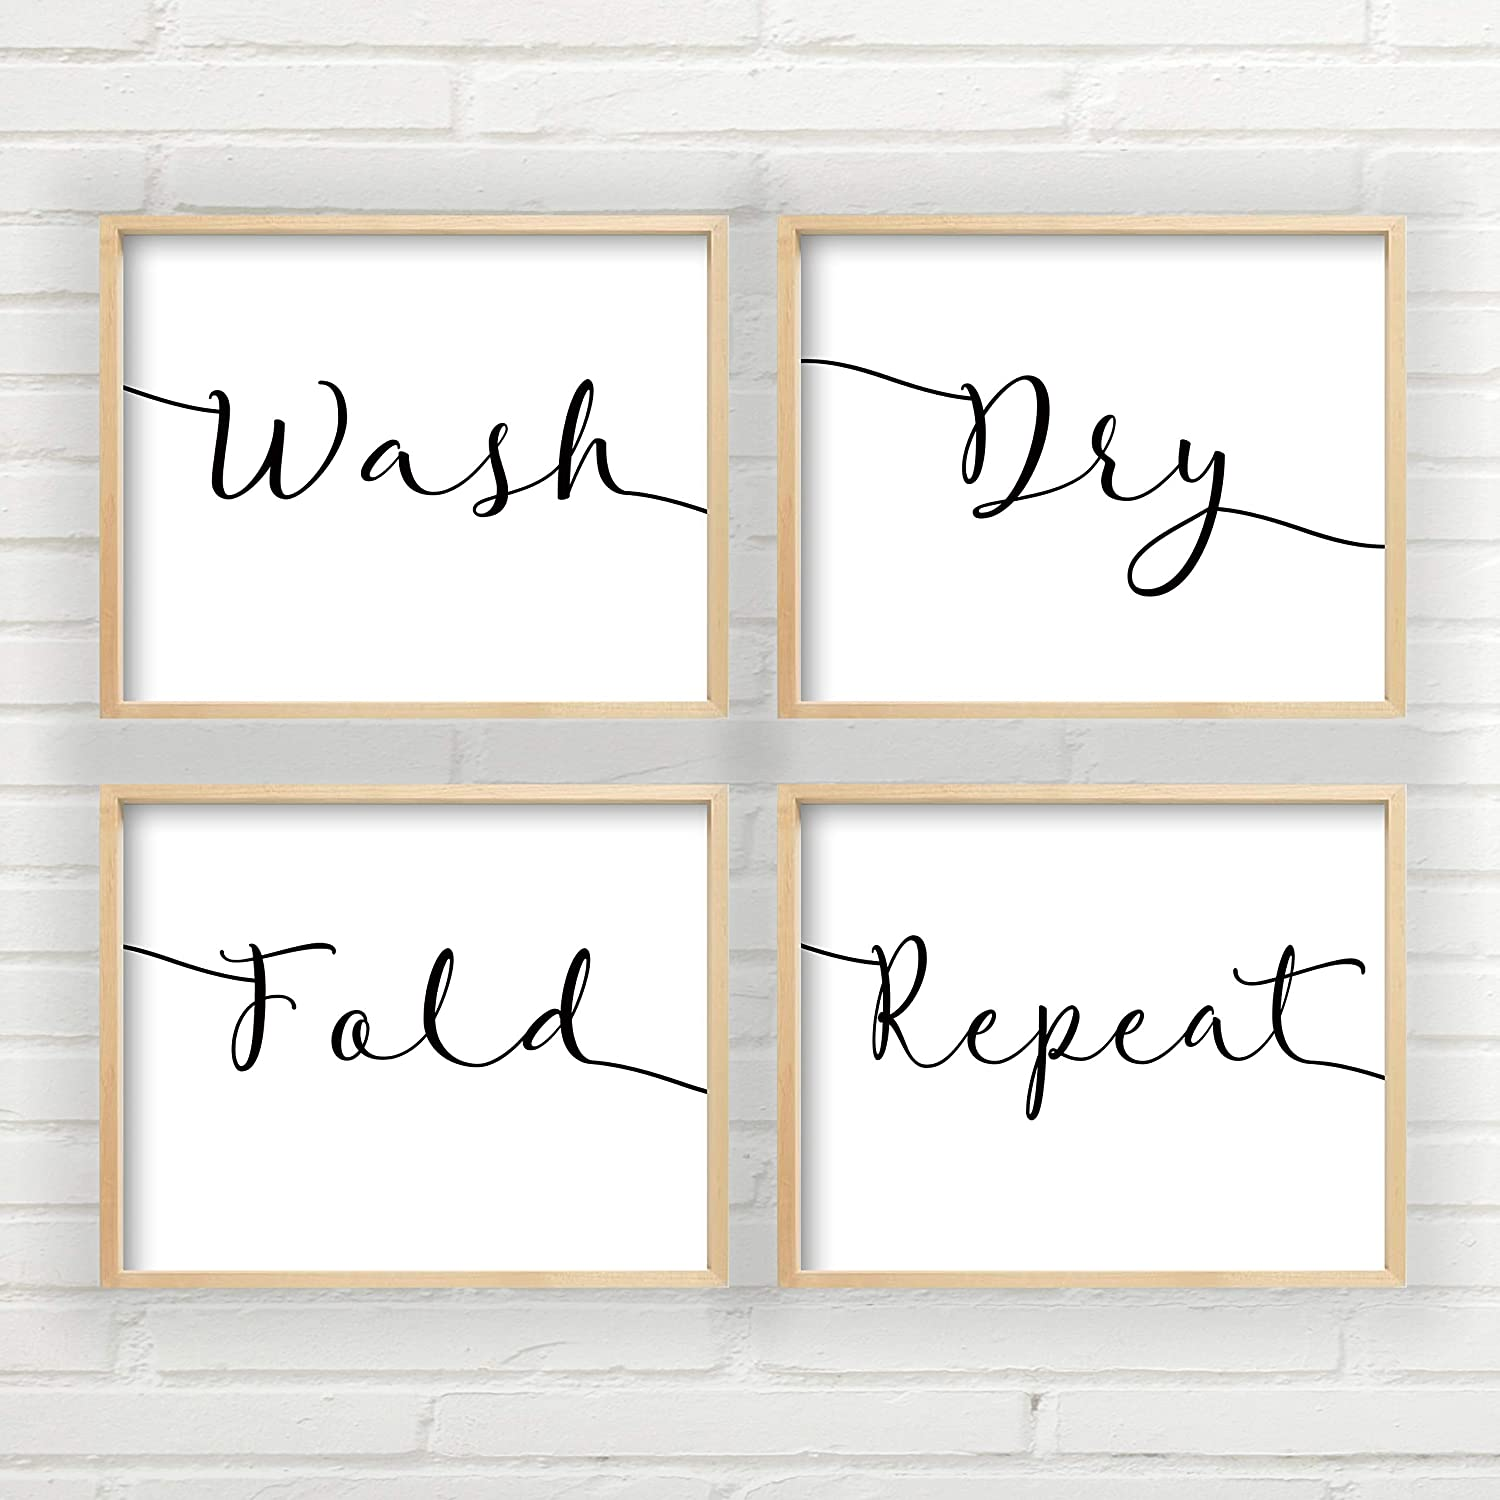 Amazon Com Wash Dry Fold Repeat Wall Art Laundry Room Wall Decor Art Prints Set Of 4 Laundry Room Wall Art Farmhouse Decor 4 Unframed Farmhouse Prints Handmade